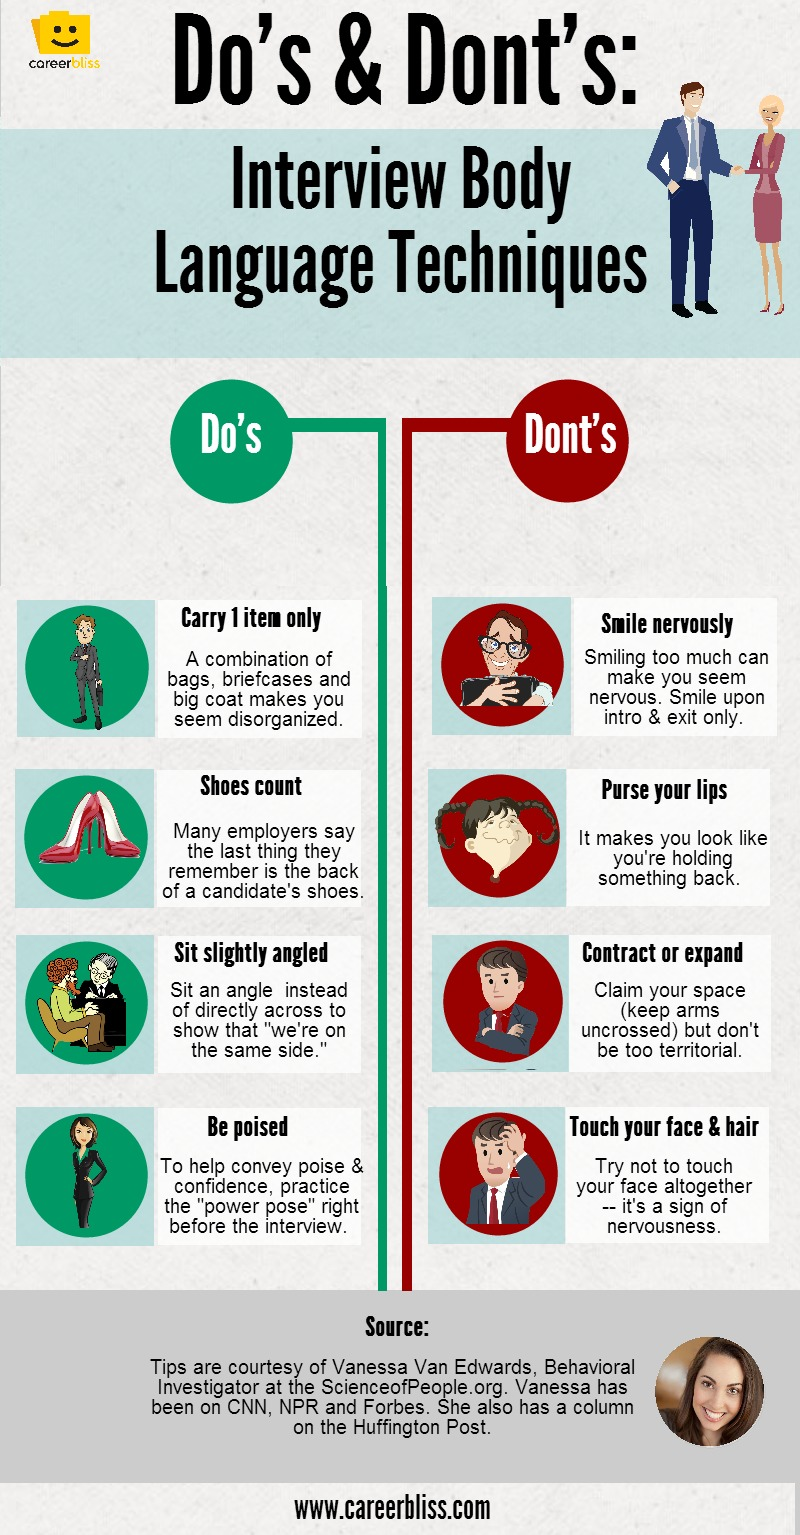 body language tips for job interviews infographic careerbliss alt